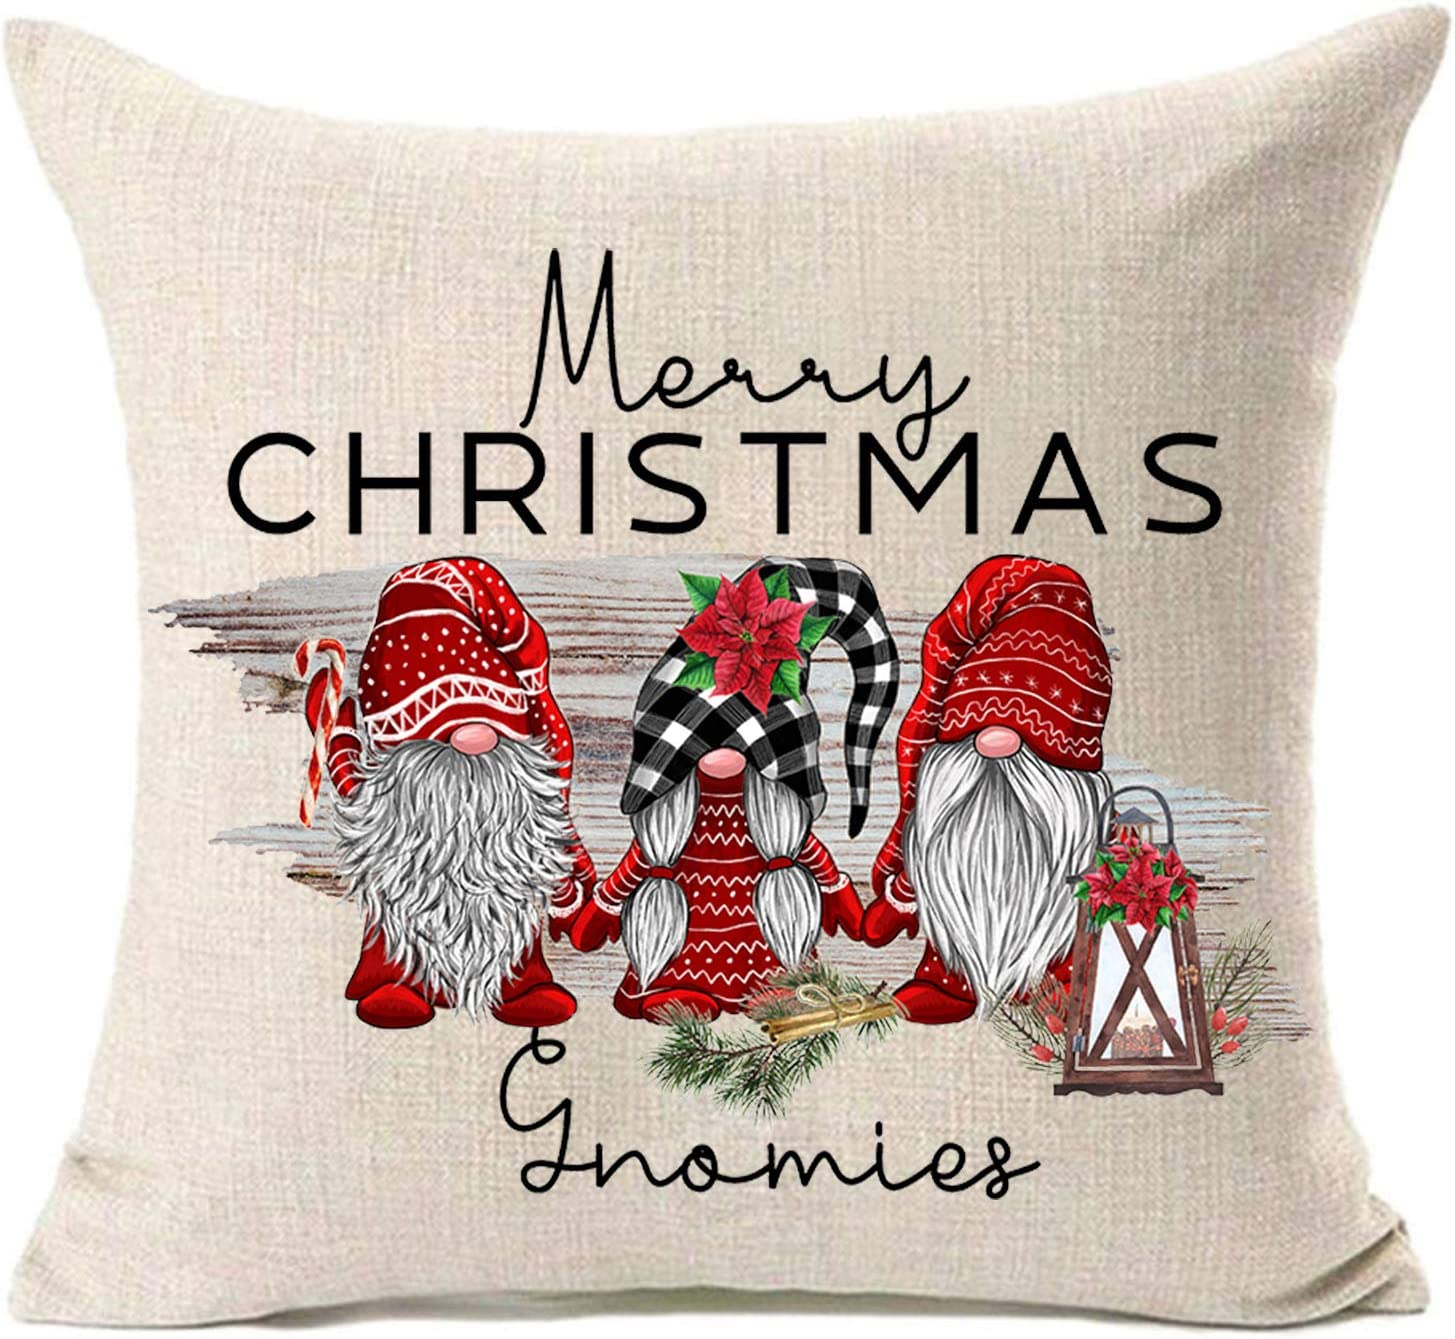 MFGNEH Merry Christmas Pillow Covers 16x16 Inches Gnomies Christmas Decorations Farmhouse Cotton Linen Throw Pillow Case Cushion Cover,Gnome Christmas Decor